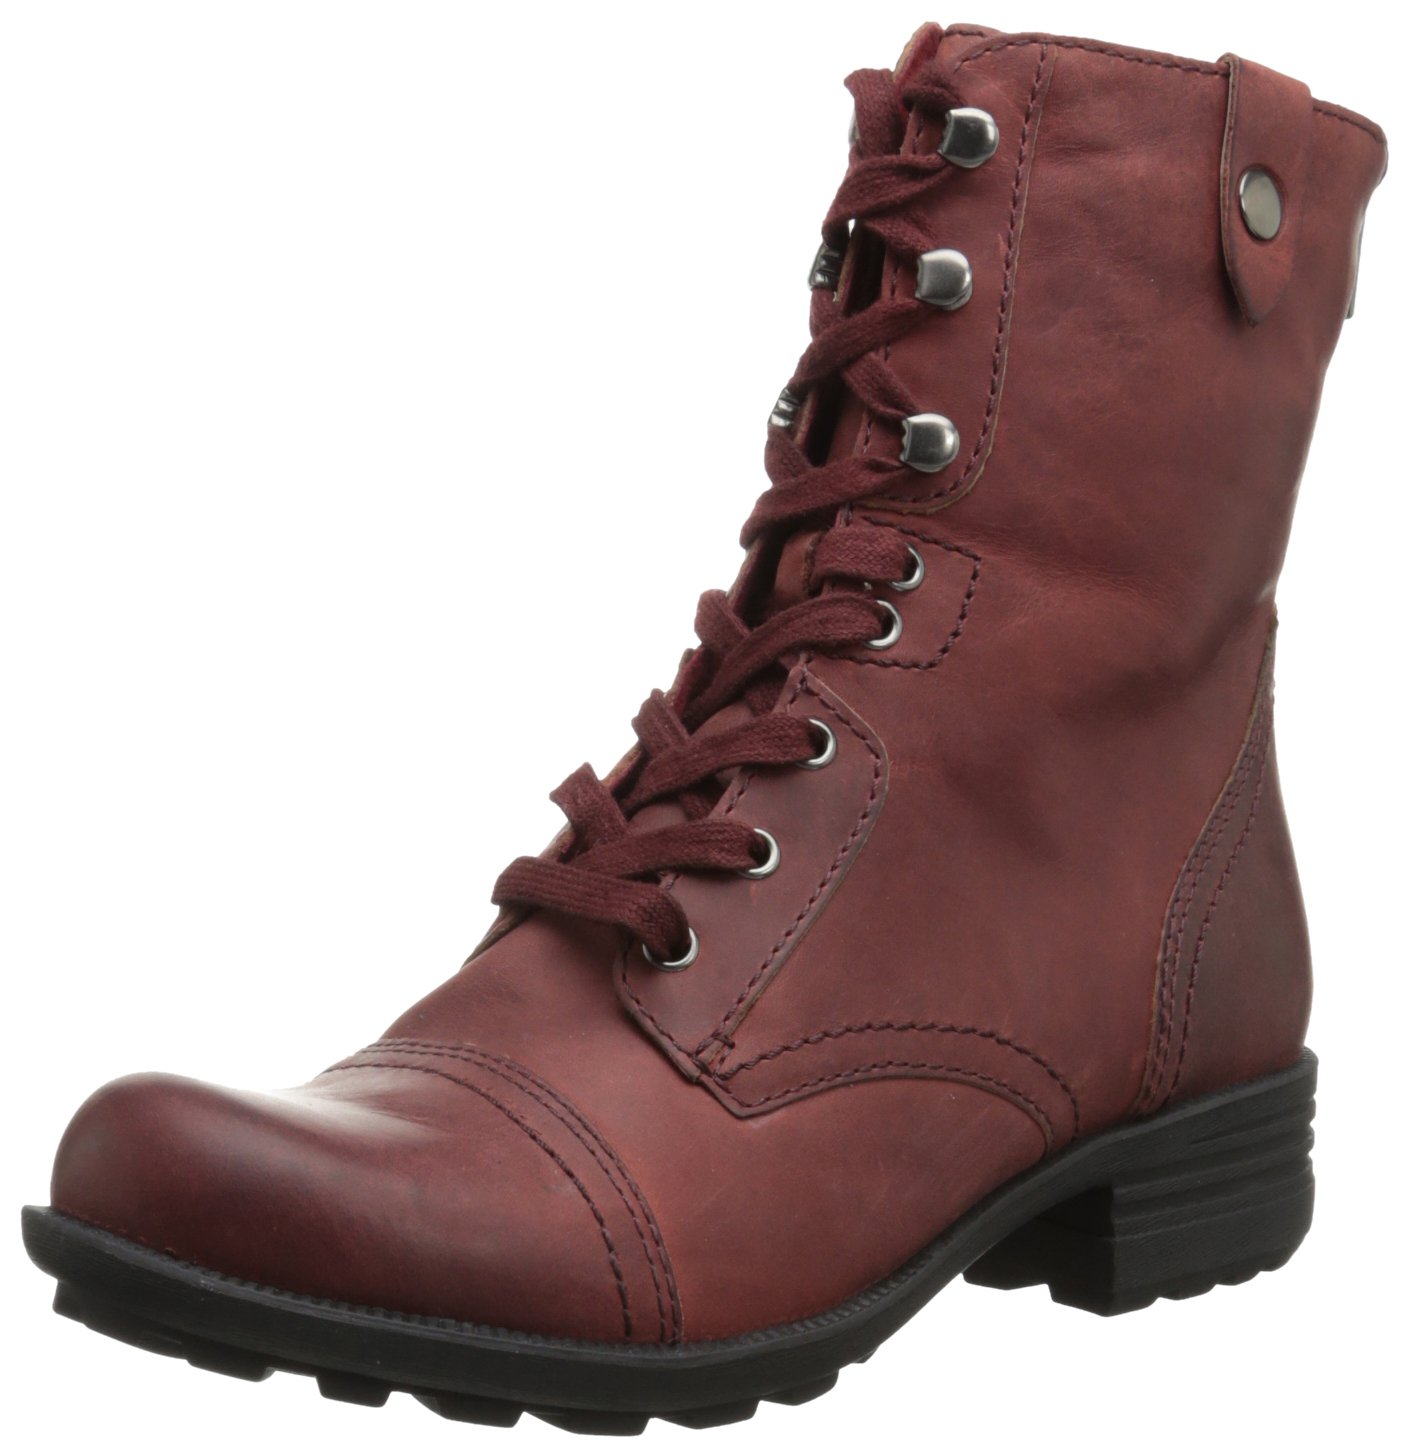 Cobb Hill Women's Bethany Boot B00B9GQ20G 8 B(M) US|Dark Red